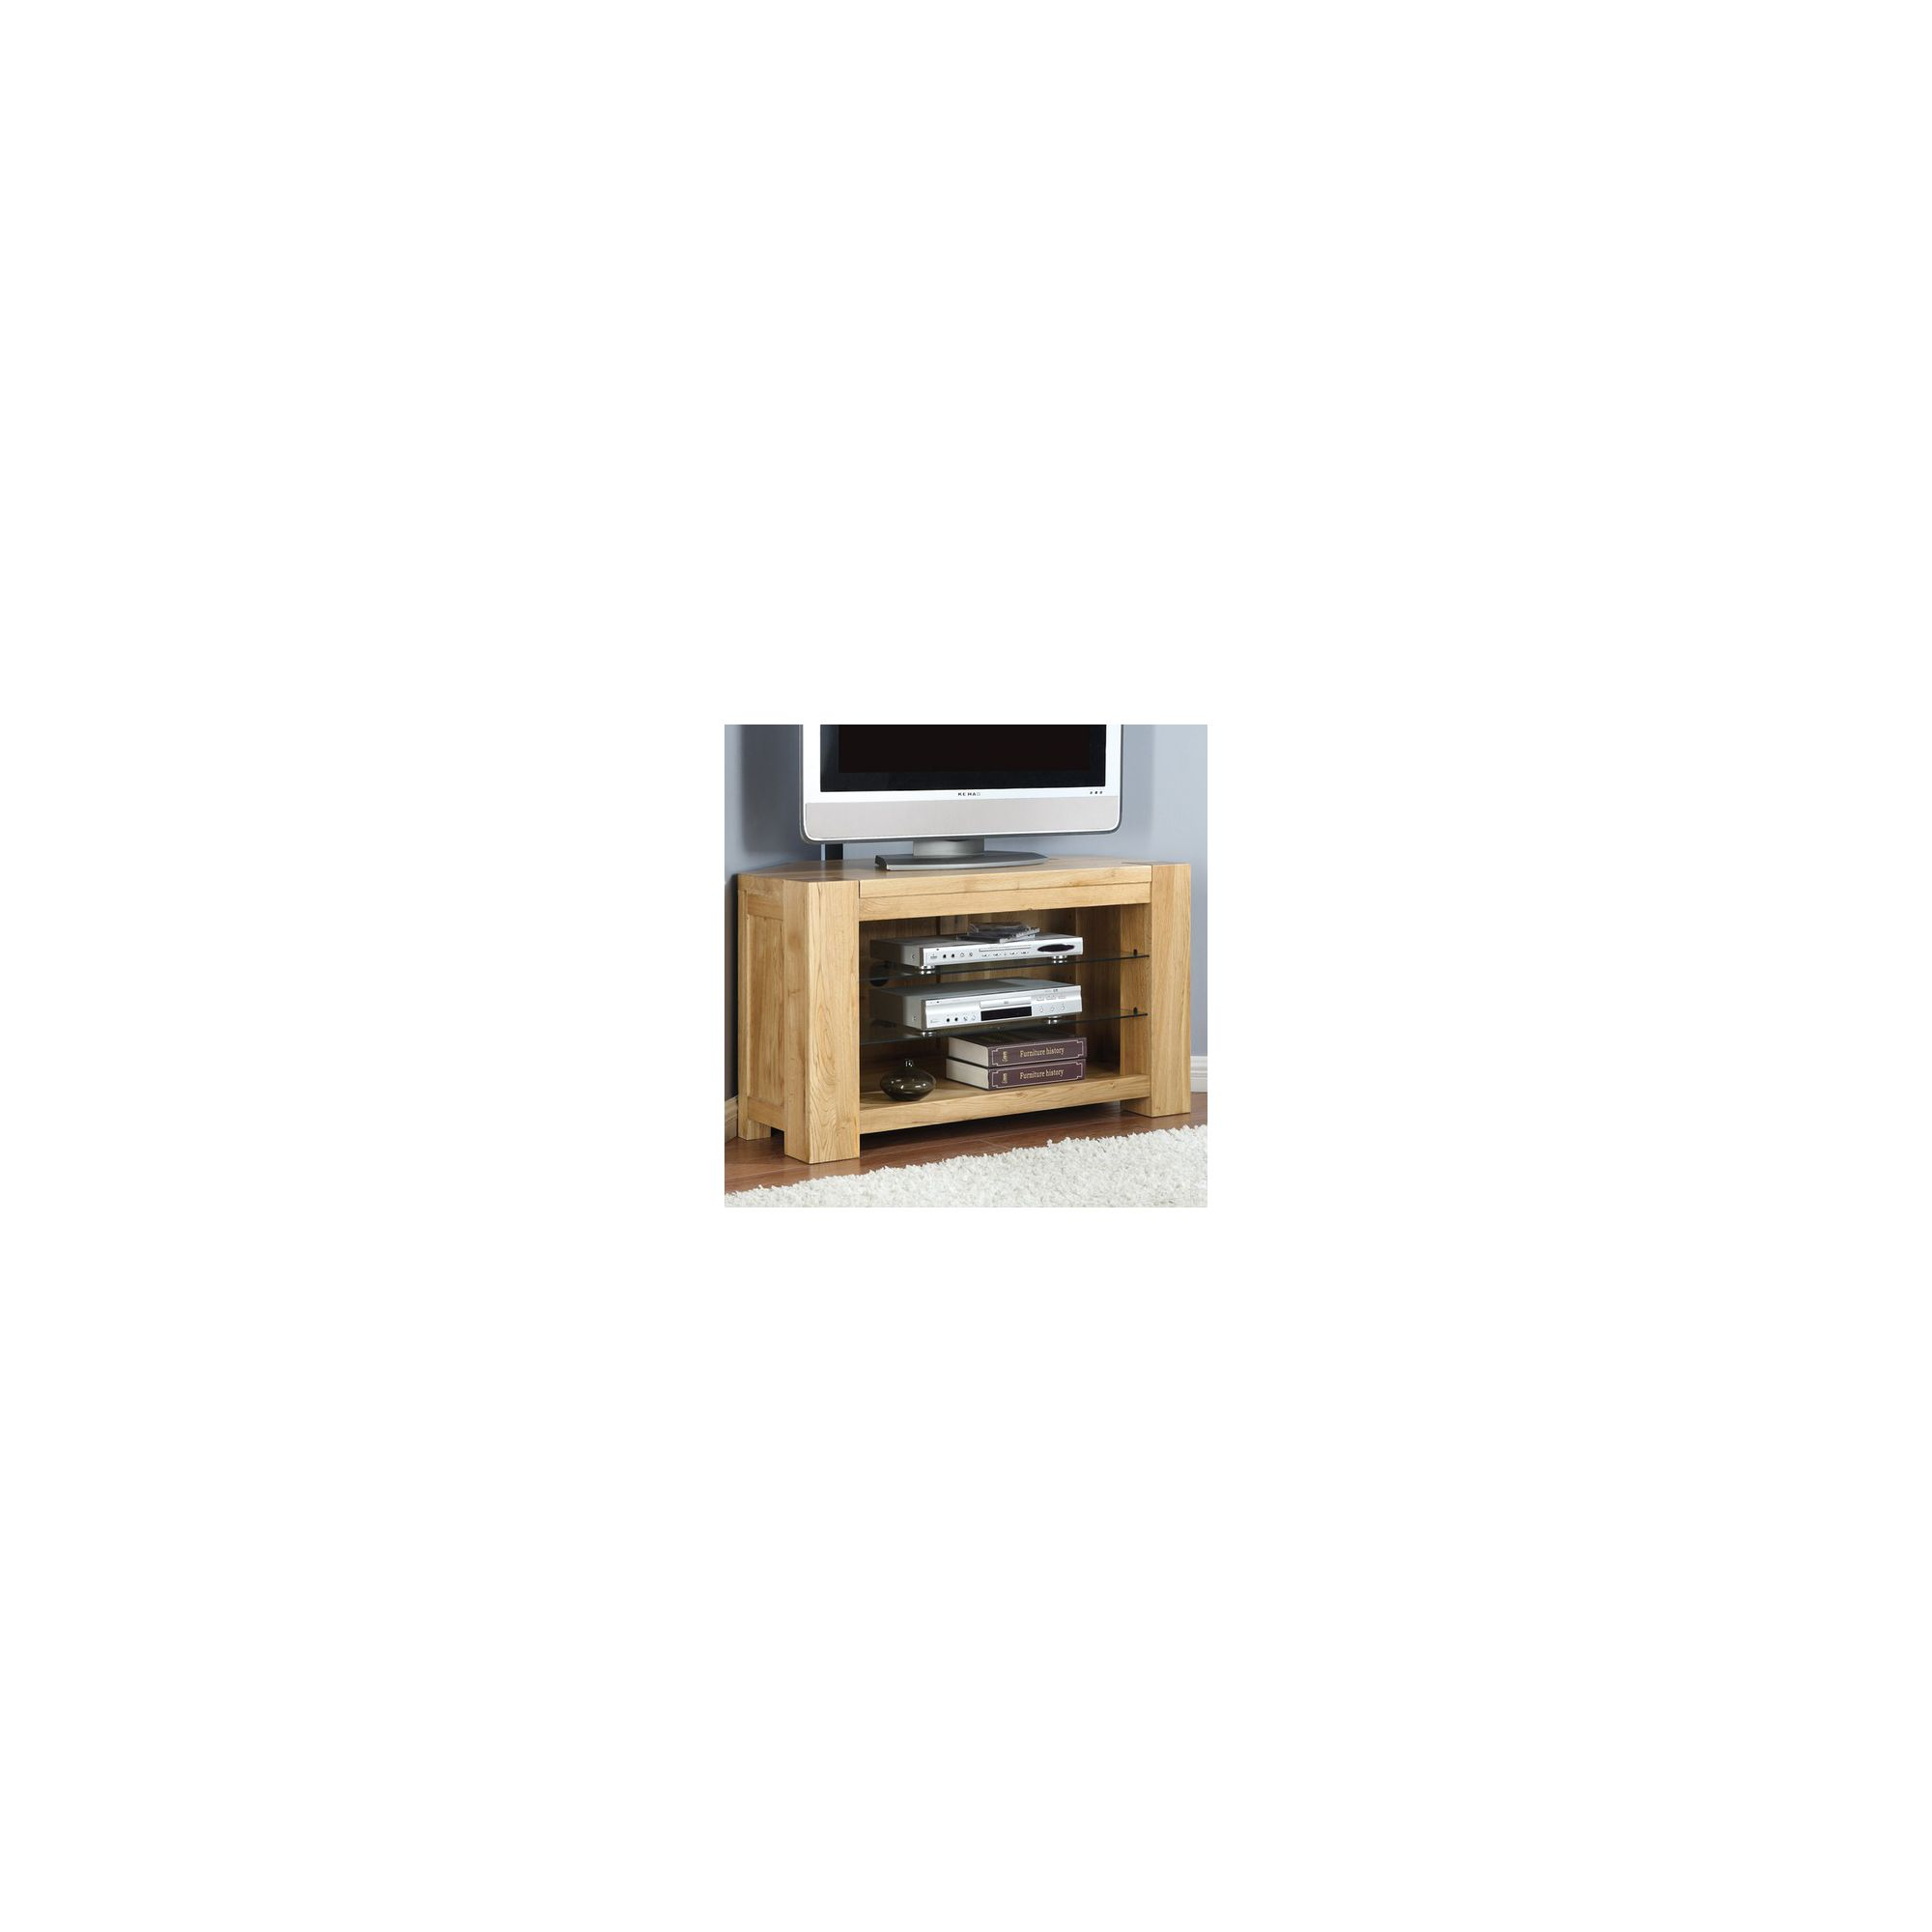 Shankar Enterprises Oslo Corner TV Stand at Tesco Direct